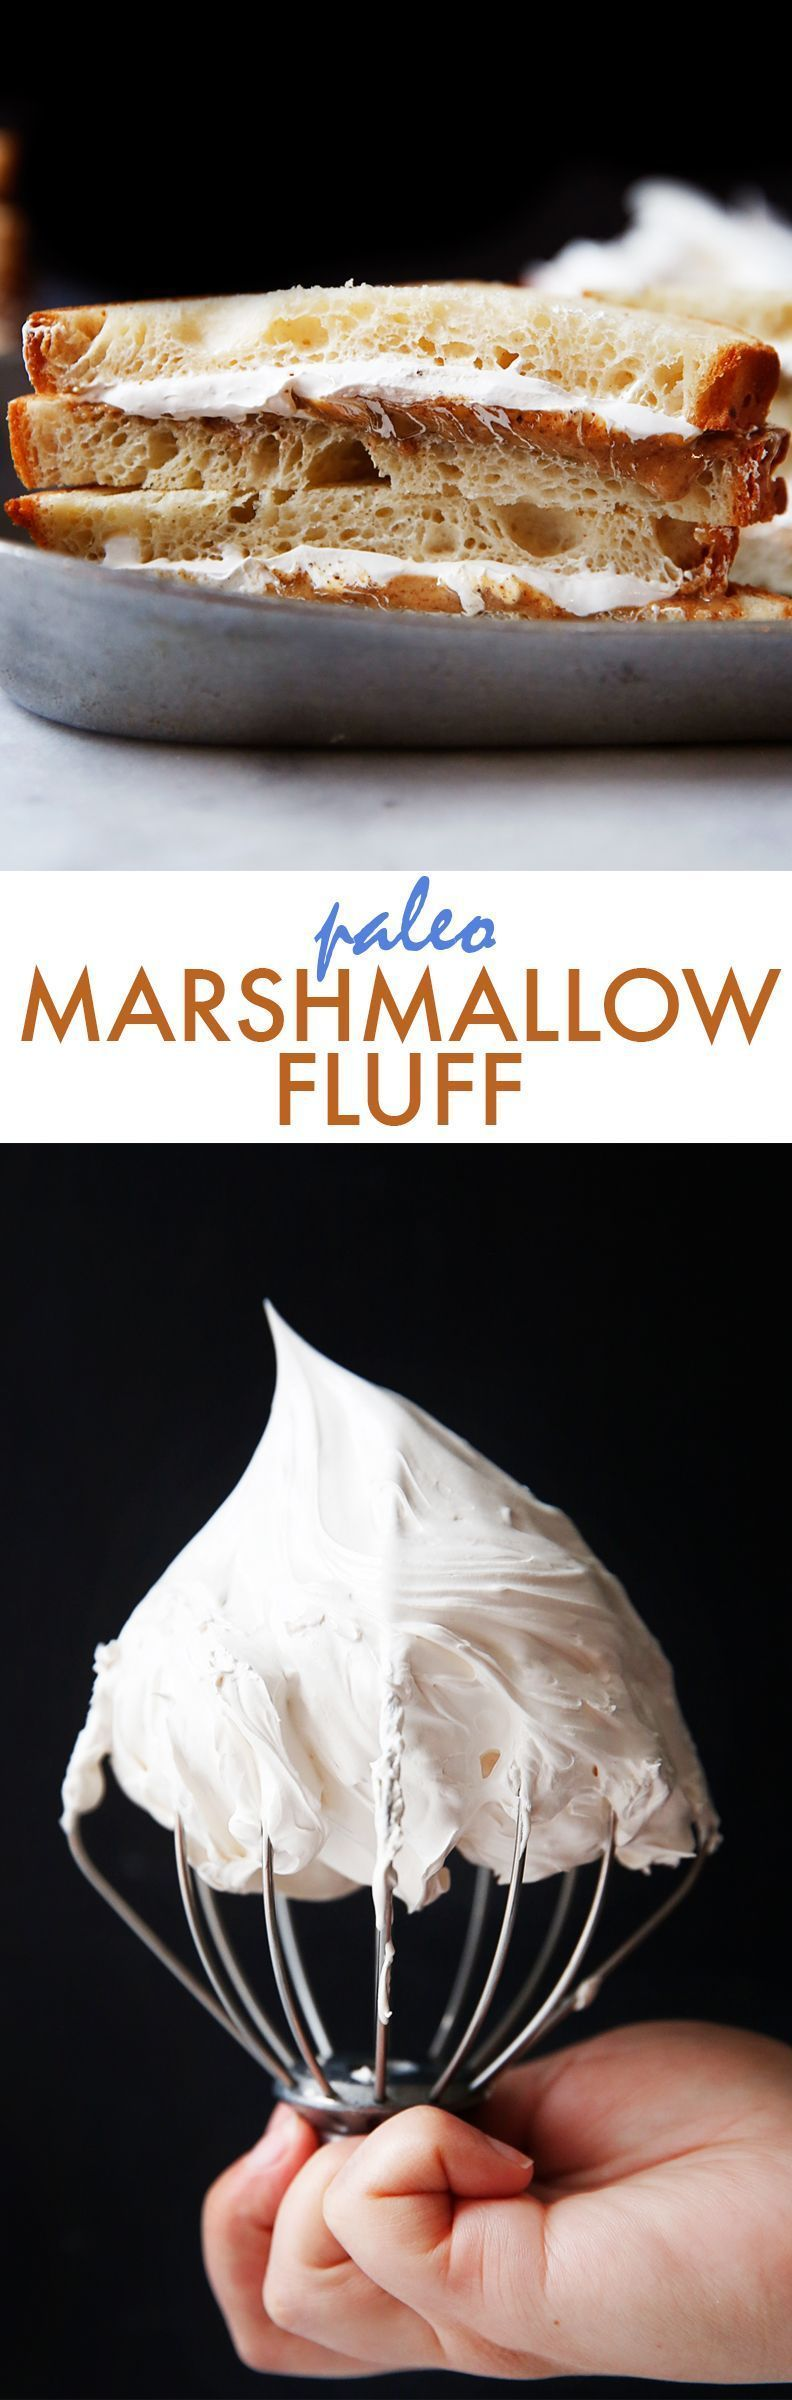 Easy Paleo Marshmallow Fluff #marshmallow #fluff #paleo #easy #fluffsandwich #marshmallowflufffrosting Easy Paleo Marshmallow Fluff #marshmallow #fluff #paleo #easy #fluffsandwich #marshmallowflufffrosting Easy Paleo Marshmallow Fluff #marshmallow #fluff #paleo #easy #fluffsandwich #marshmallowflufffrosting Easy Paleo Marshmallow Fluff #marshmallow #fluff #paleo #easy #fluffsandwich #healthymarshmallows Easy Paleo Marshmallow Fluff #marshmallow #fluff #paleo #easy #fluffsandwich #marshmallowfluf #healthymarshmallows